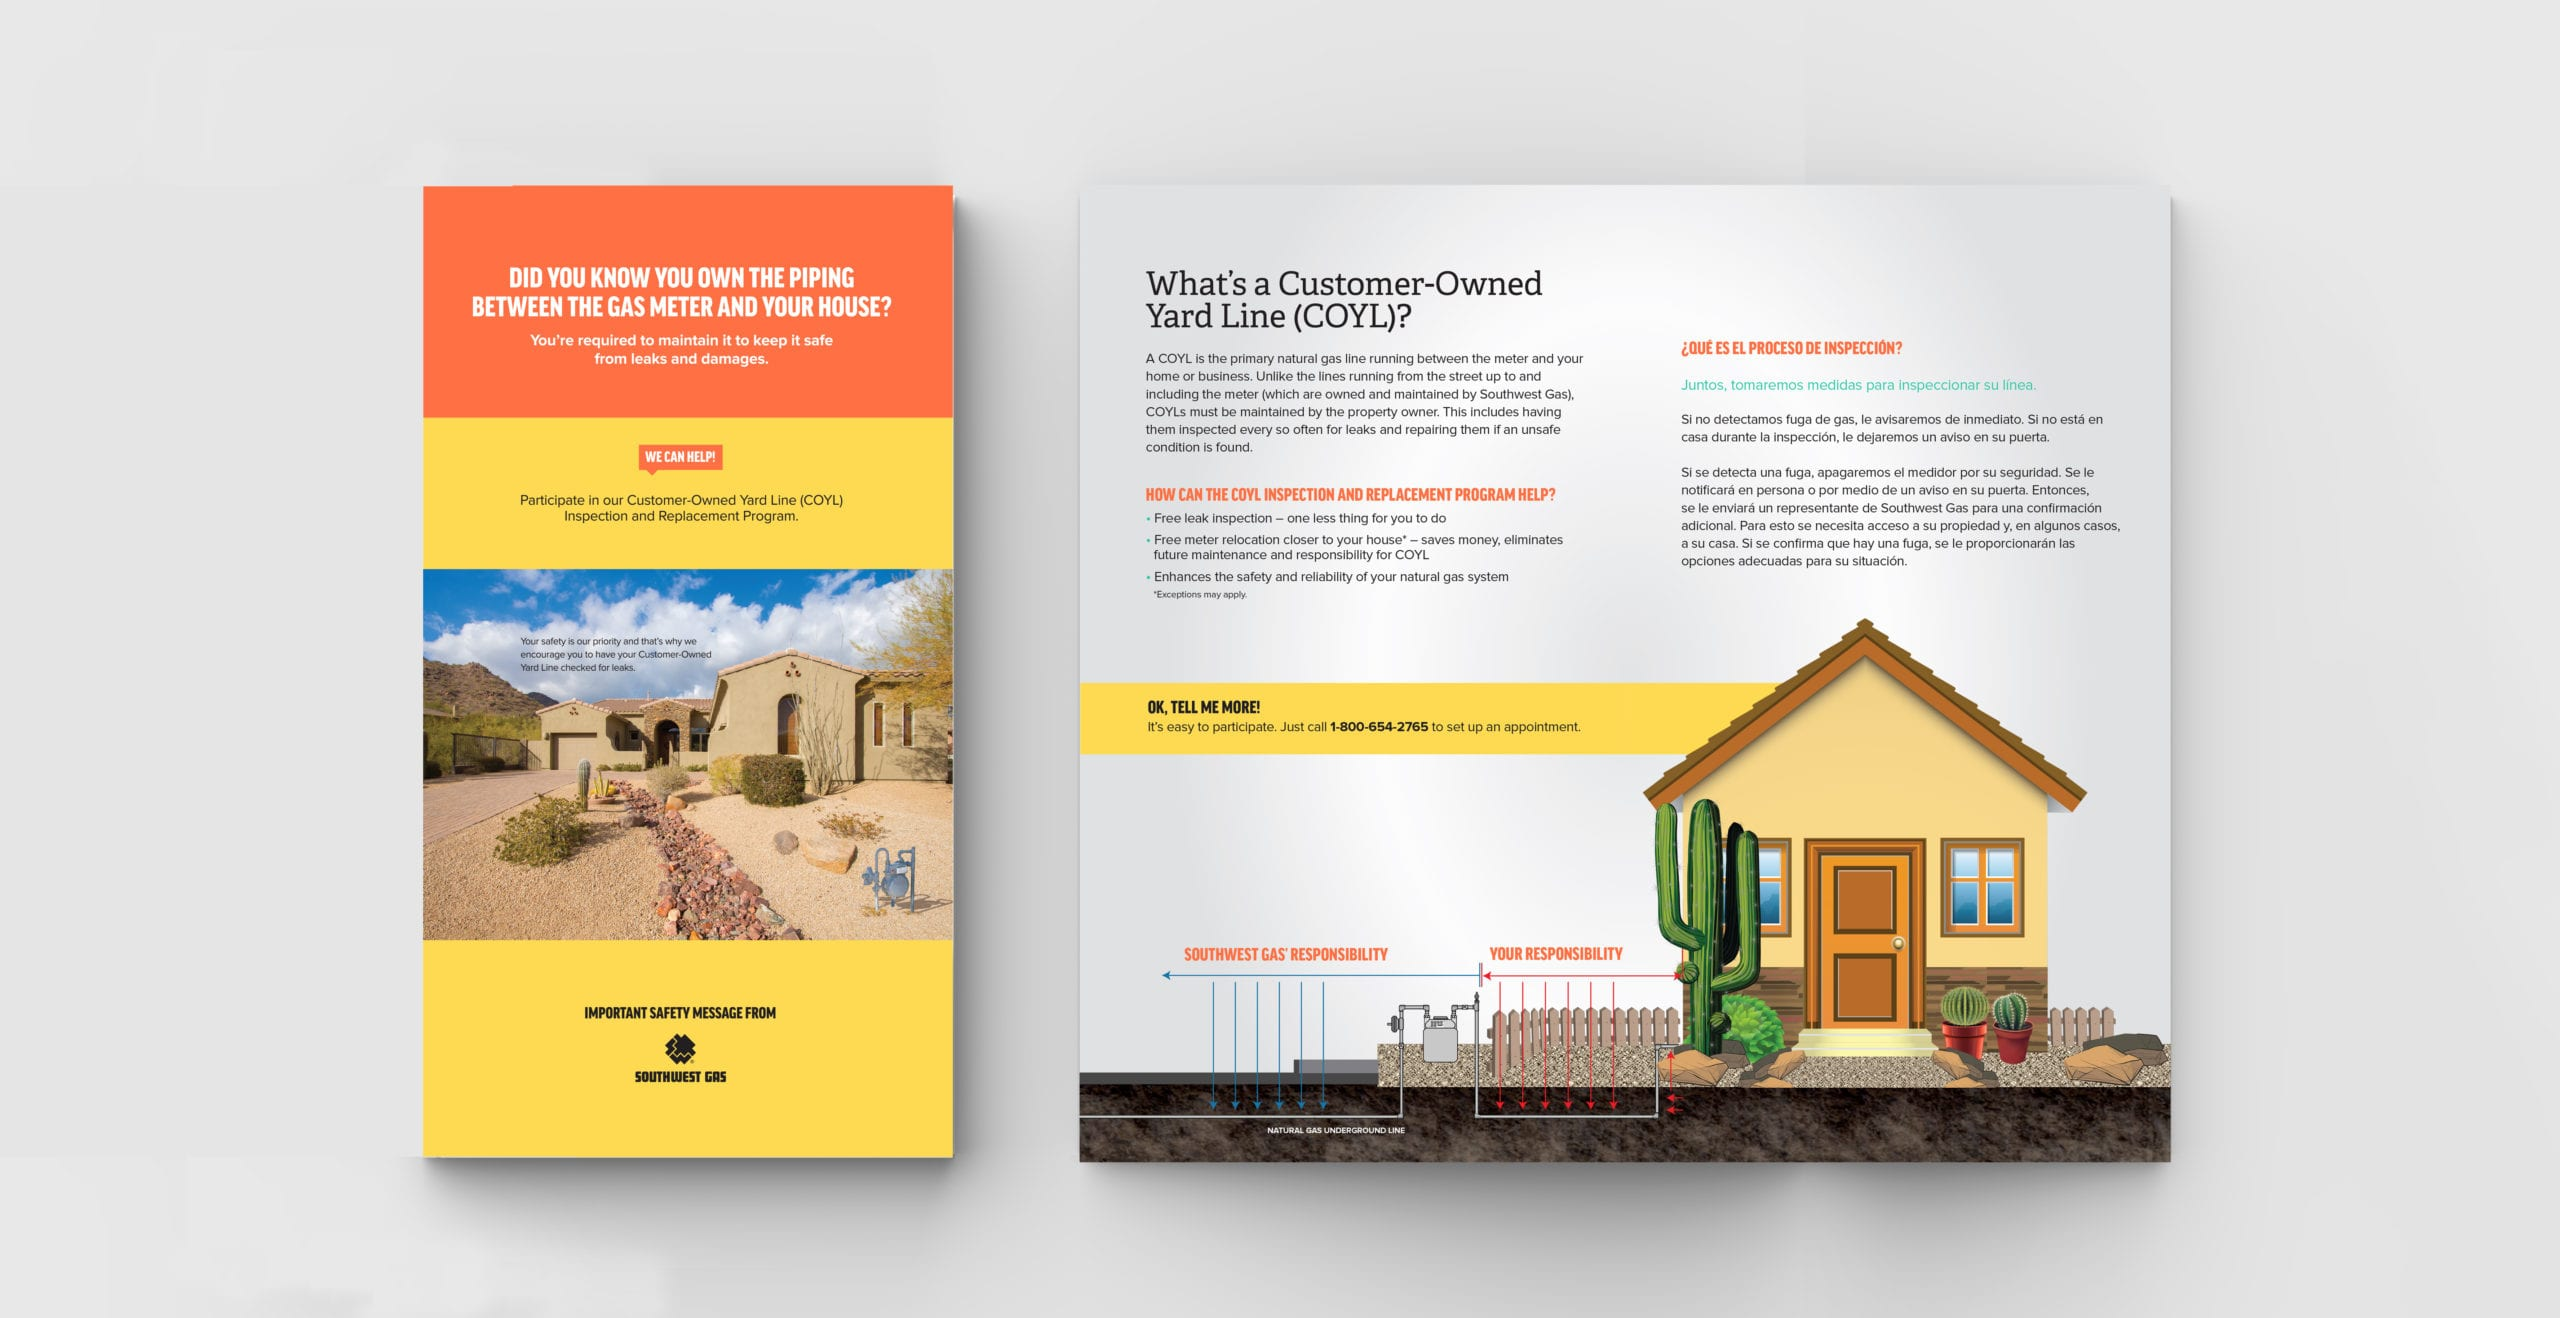 Customer-Owned Yard Line (COYL) brochure designed by Canyon Creative for Southwest Gas.